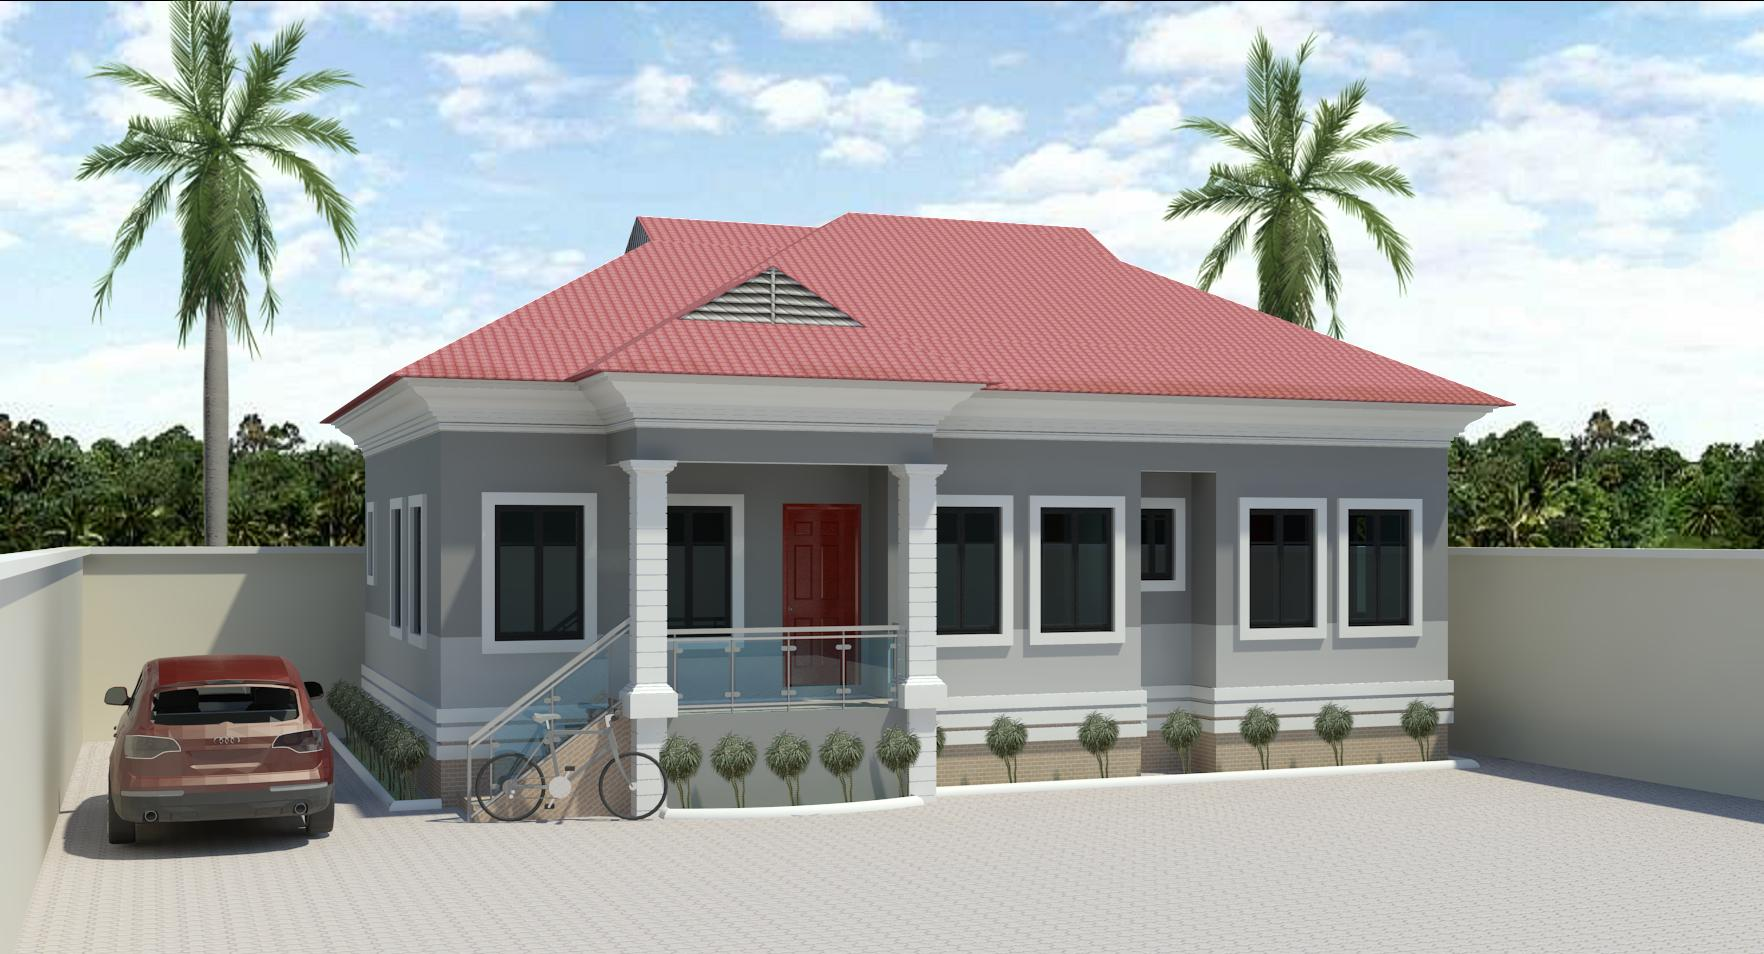 3bedroom bungalow designs in nigeria joy studio design for House plans nigeria